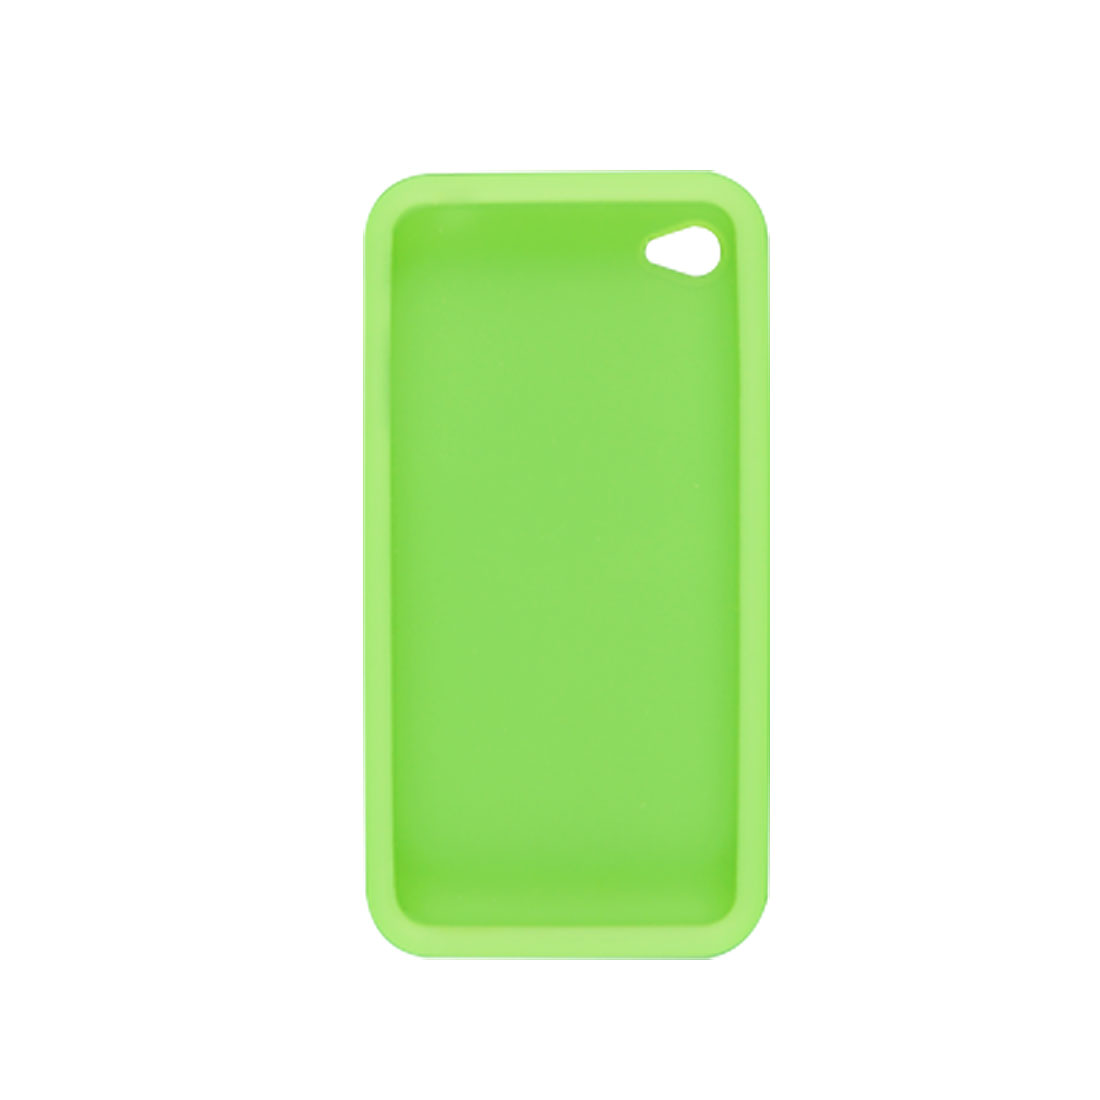 Light Green Silicone Protector + Screen Guard for Apple iPhone 4